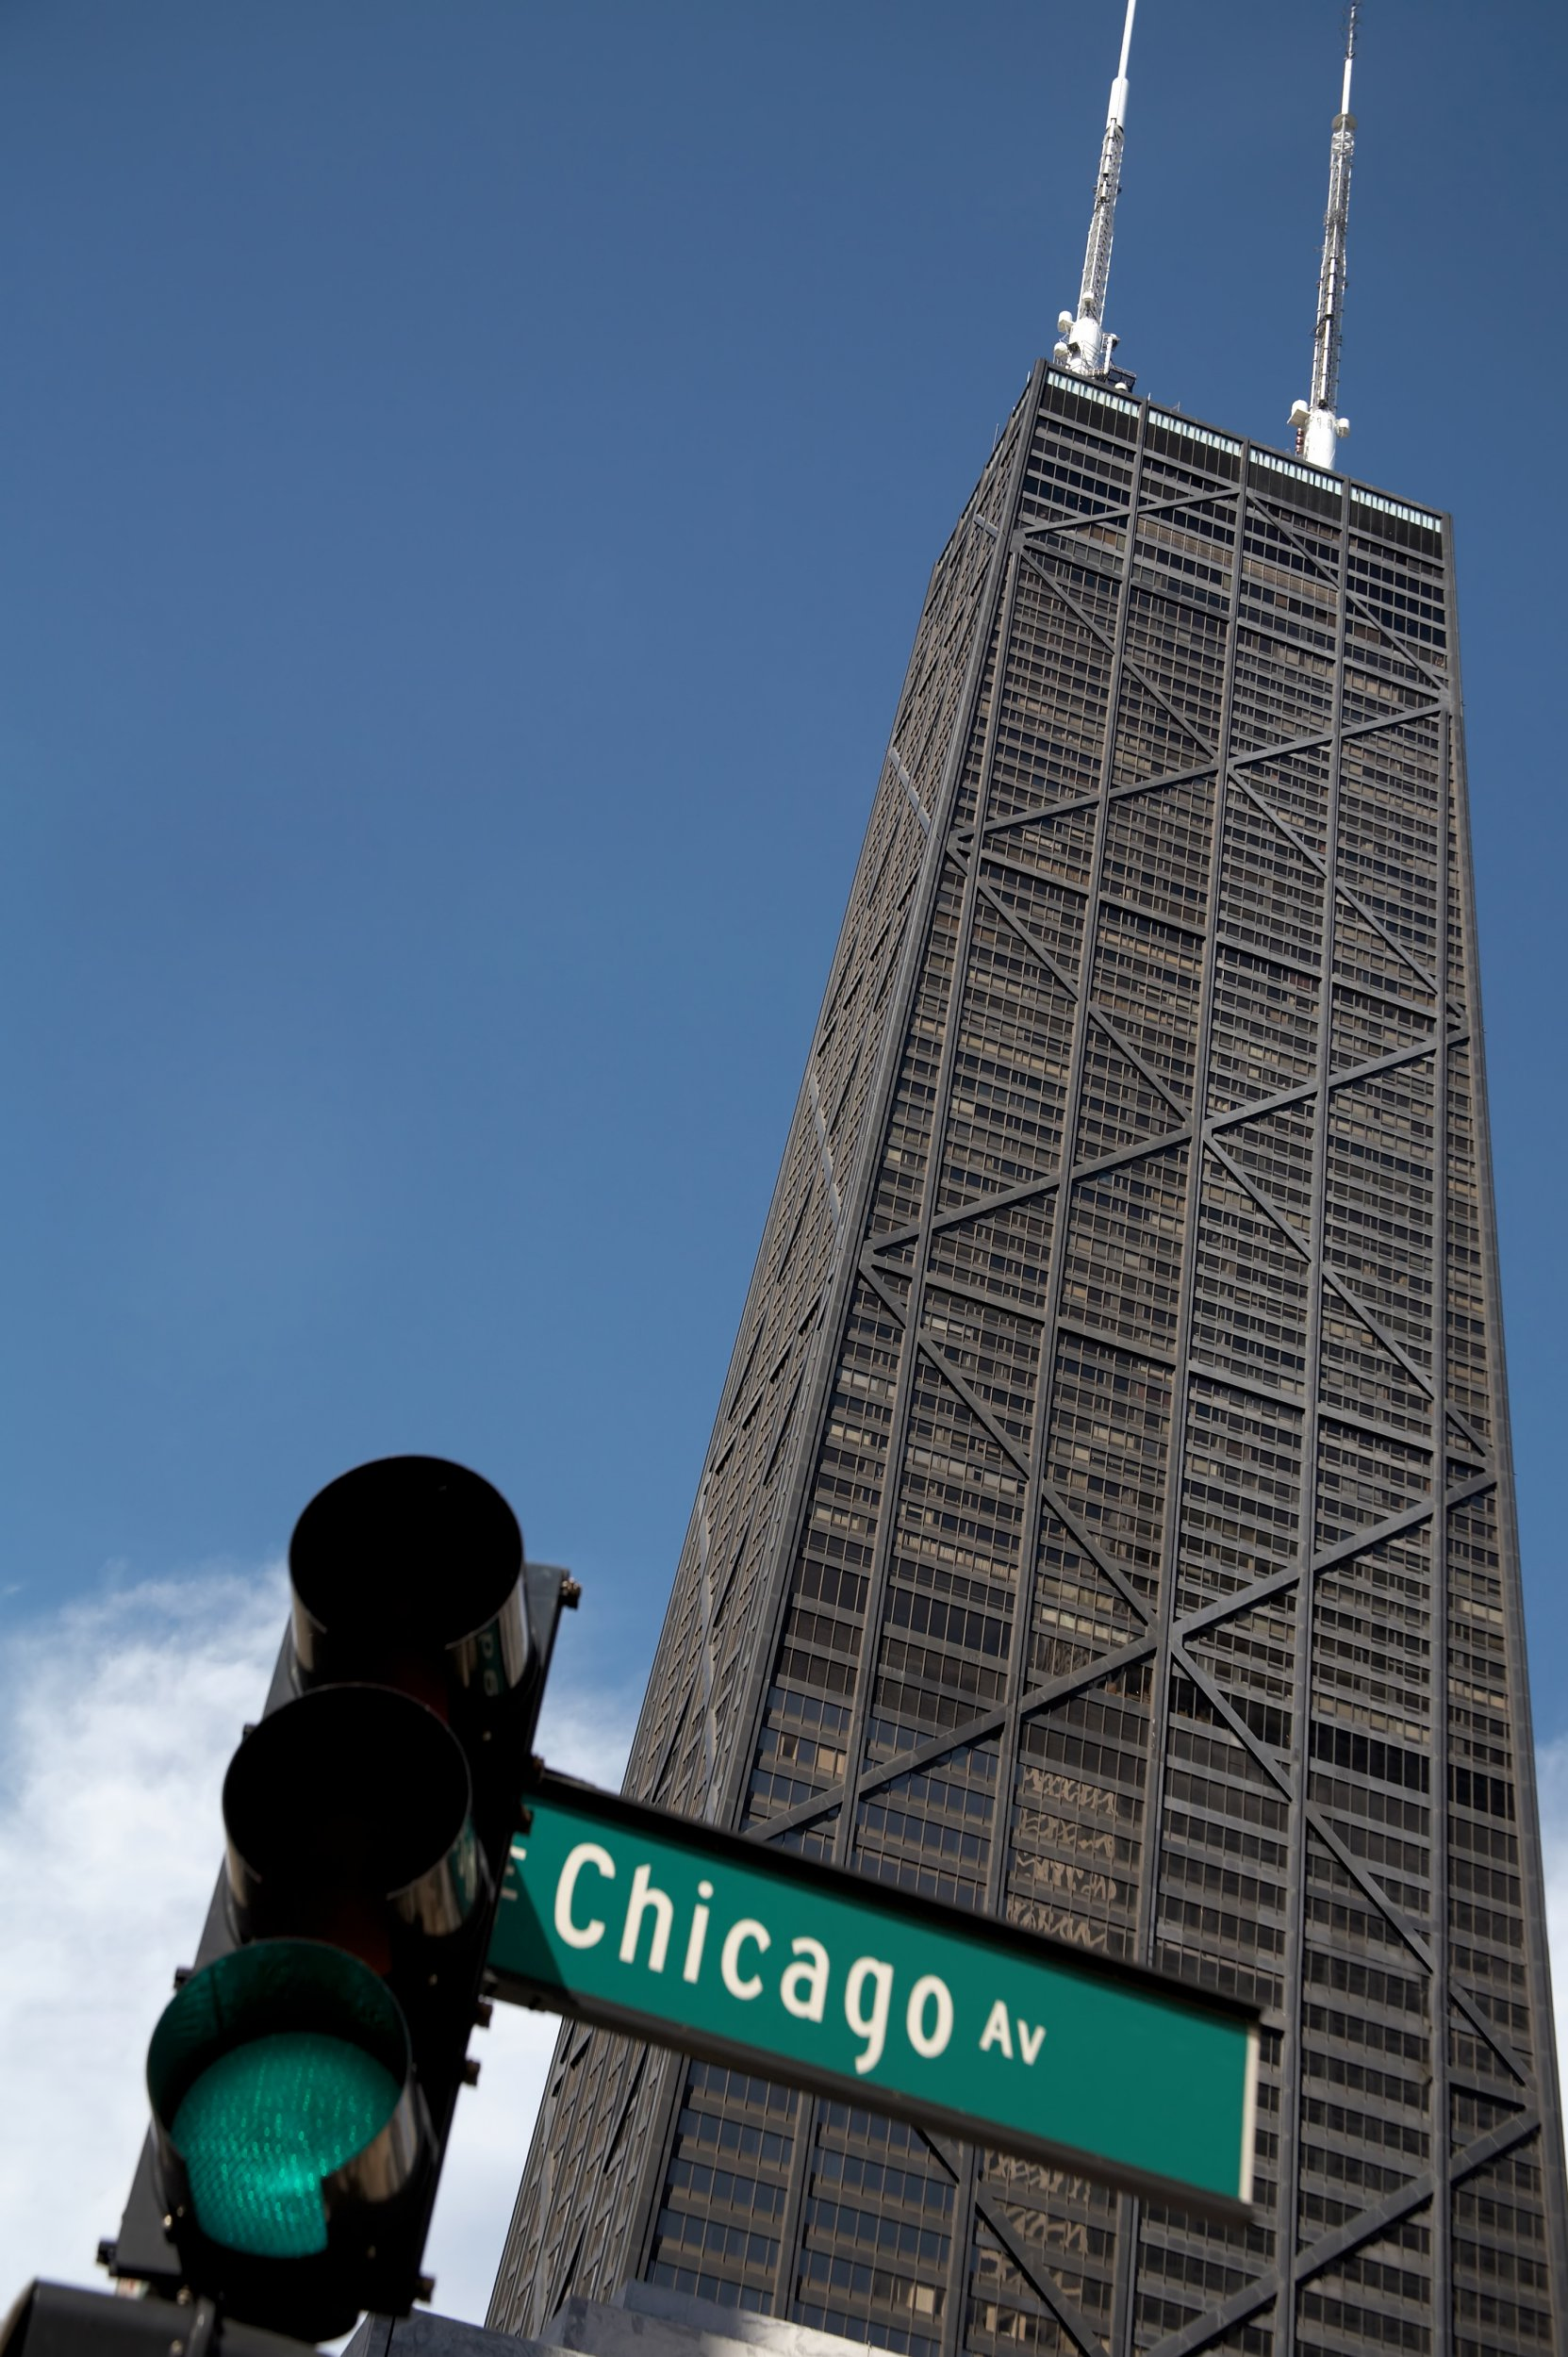 Stock image of a street sign at the intersection of Chicago & Michigan avenues. Focus is on John Hancock building, with signs in foreground slightly out of focus.